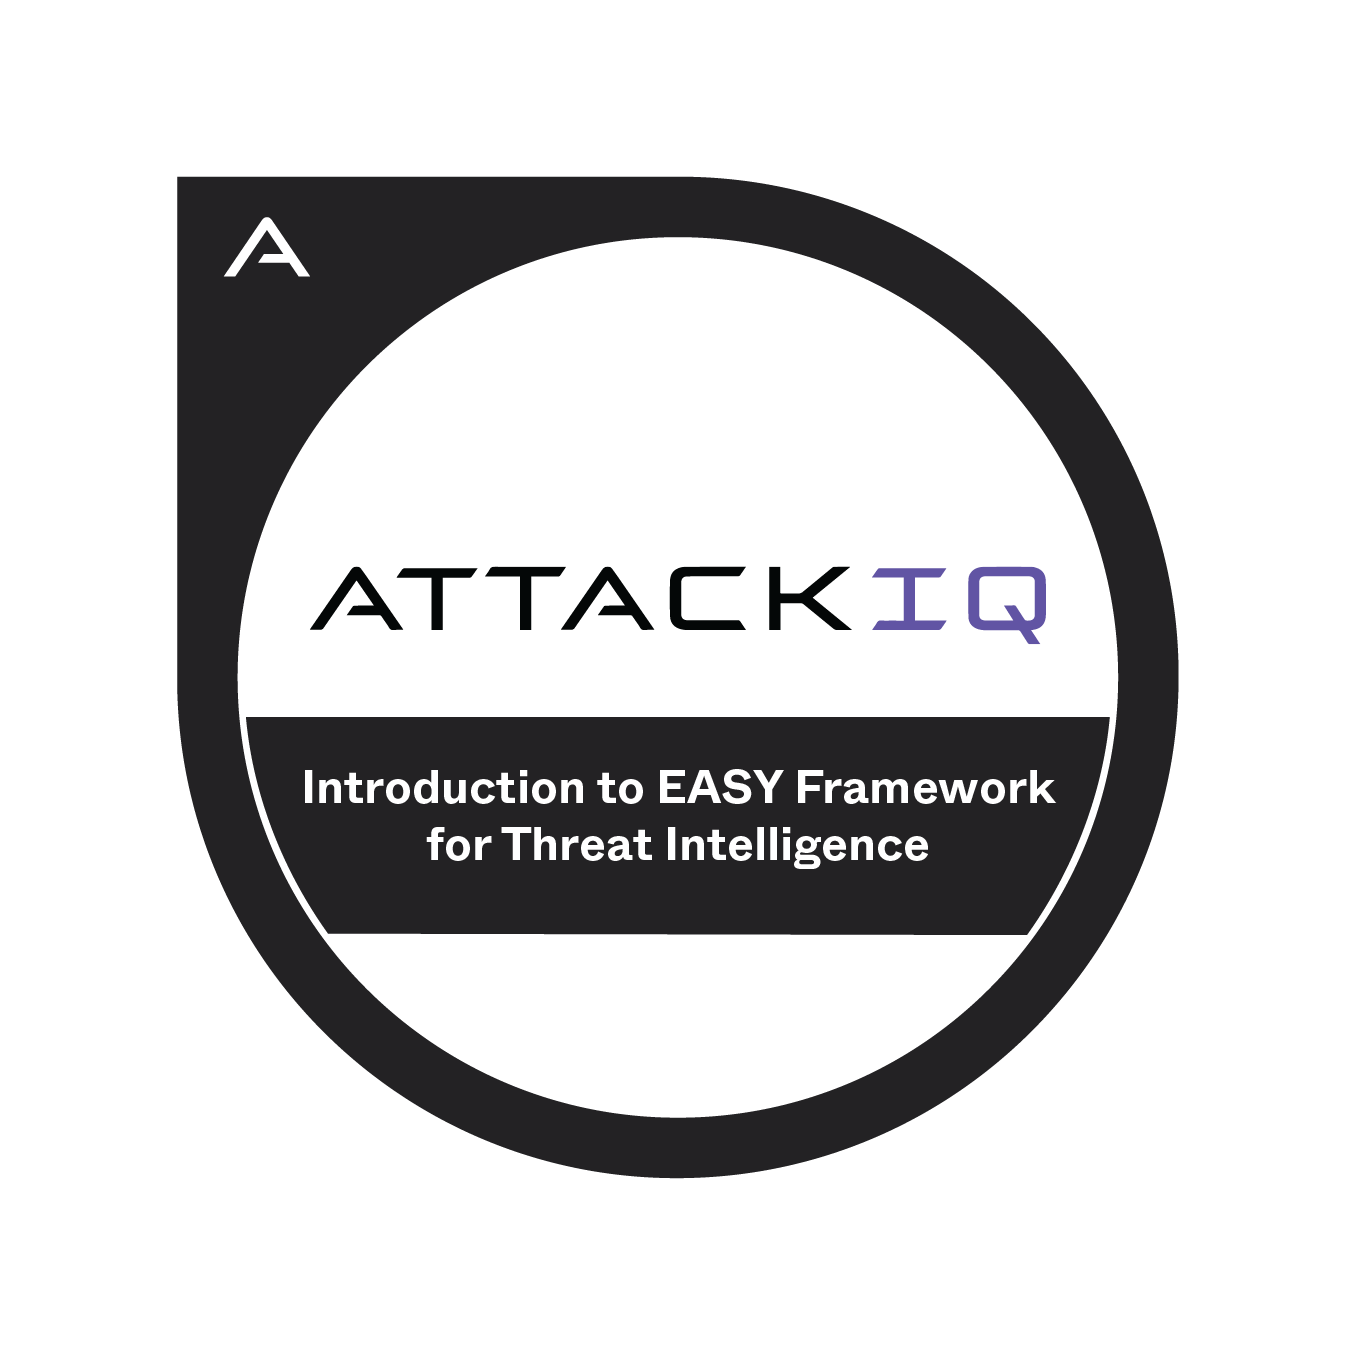 Introduction to EASY Framework for Threat Intelligence